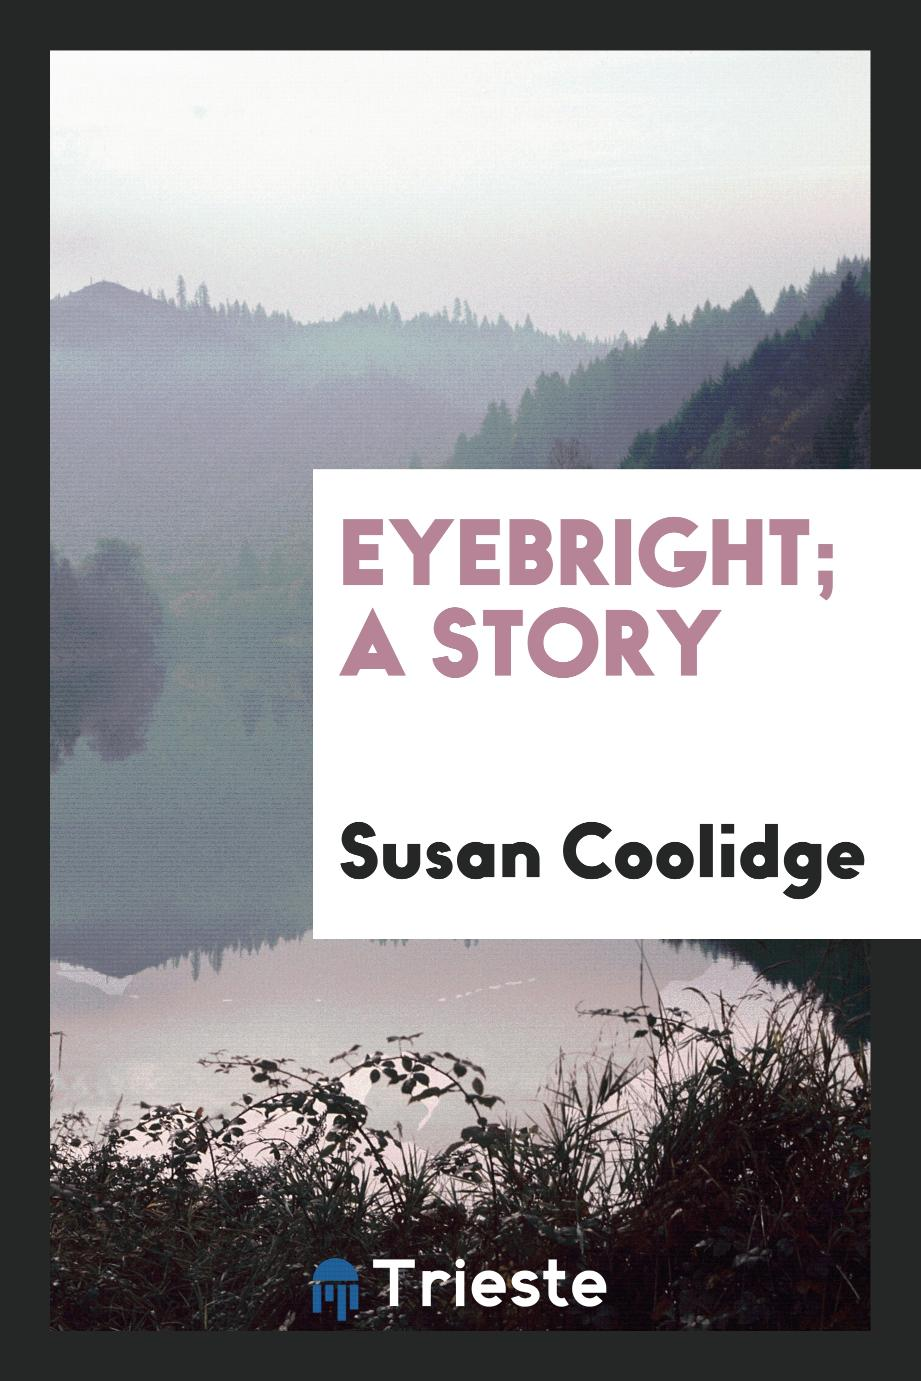 Susan Coolidge - Eyebright; a story